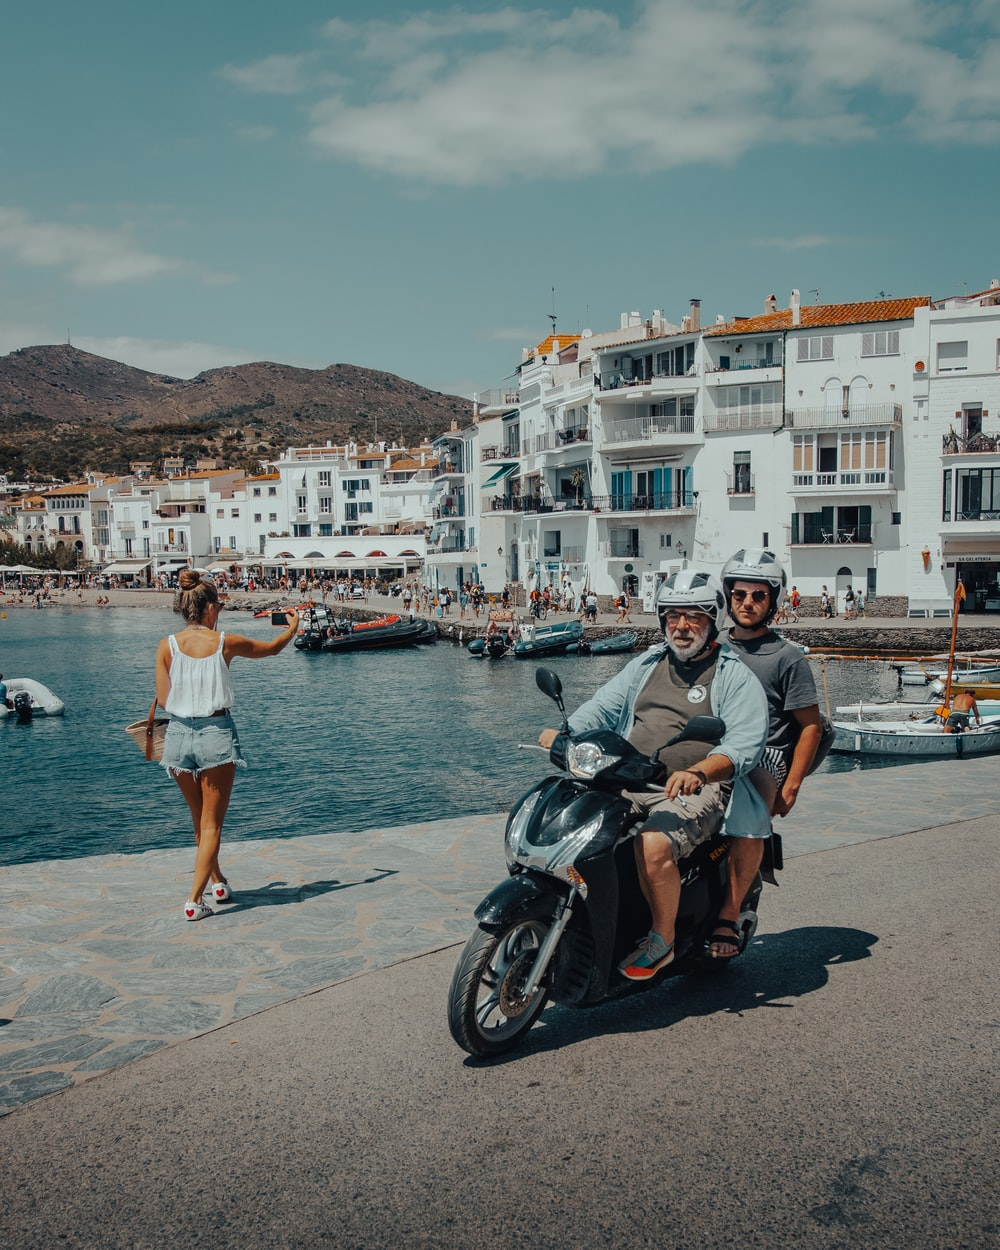 man and woman standing beside black motorcycle near body of water during daytime